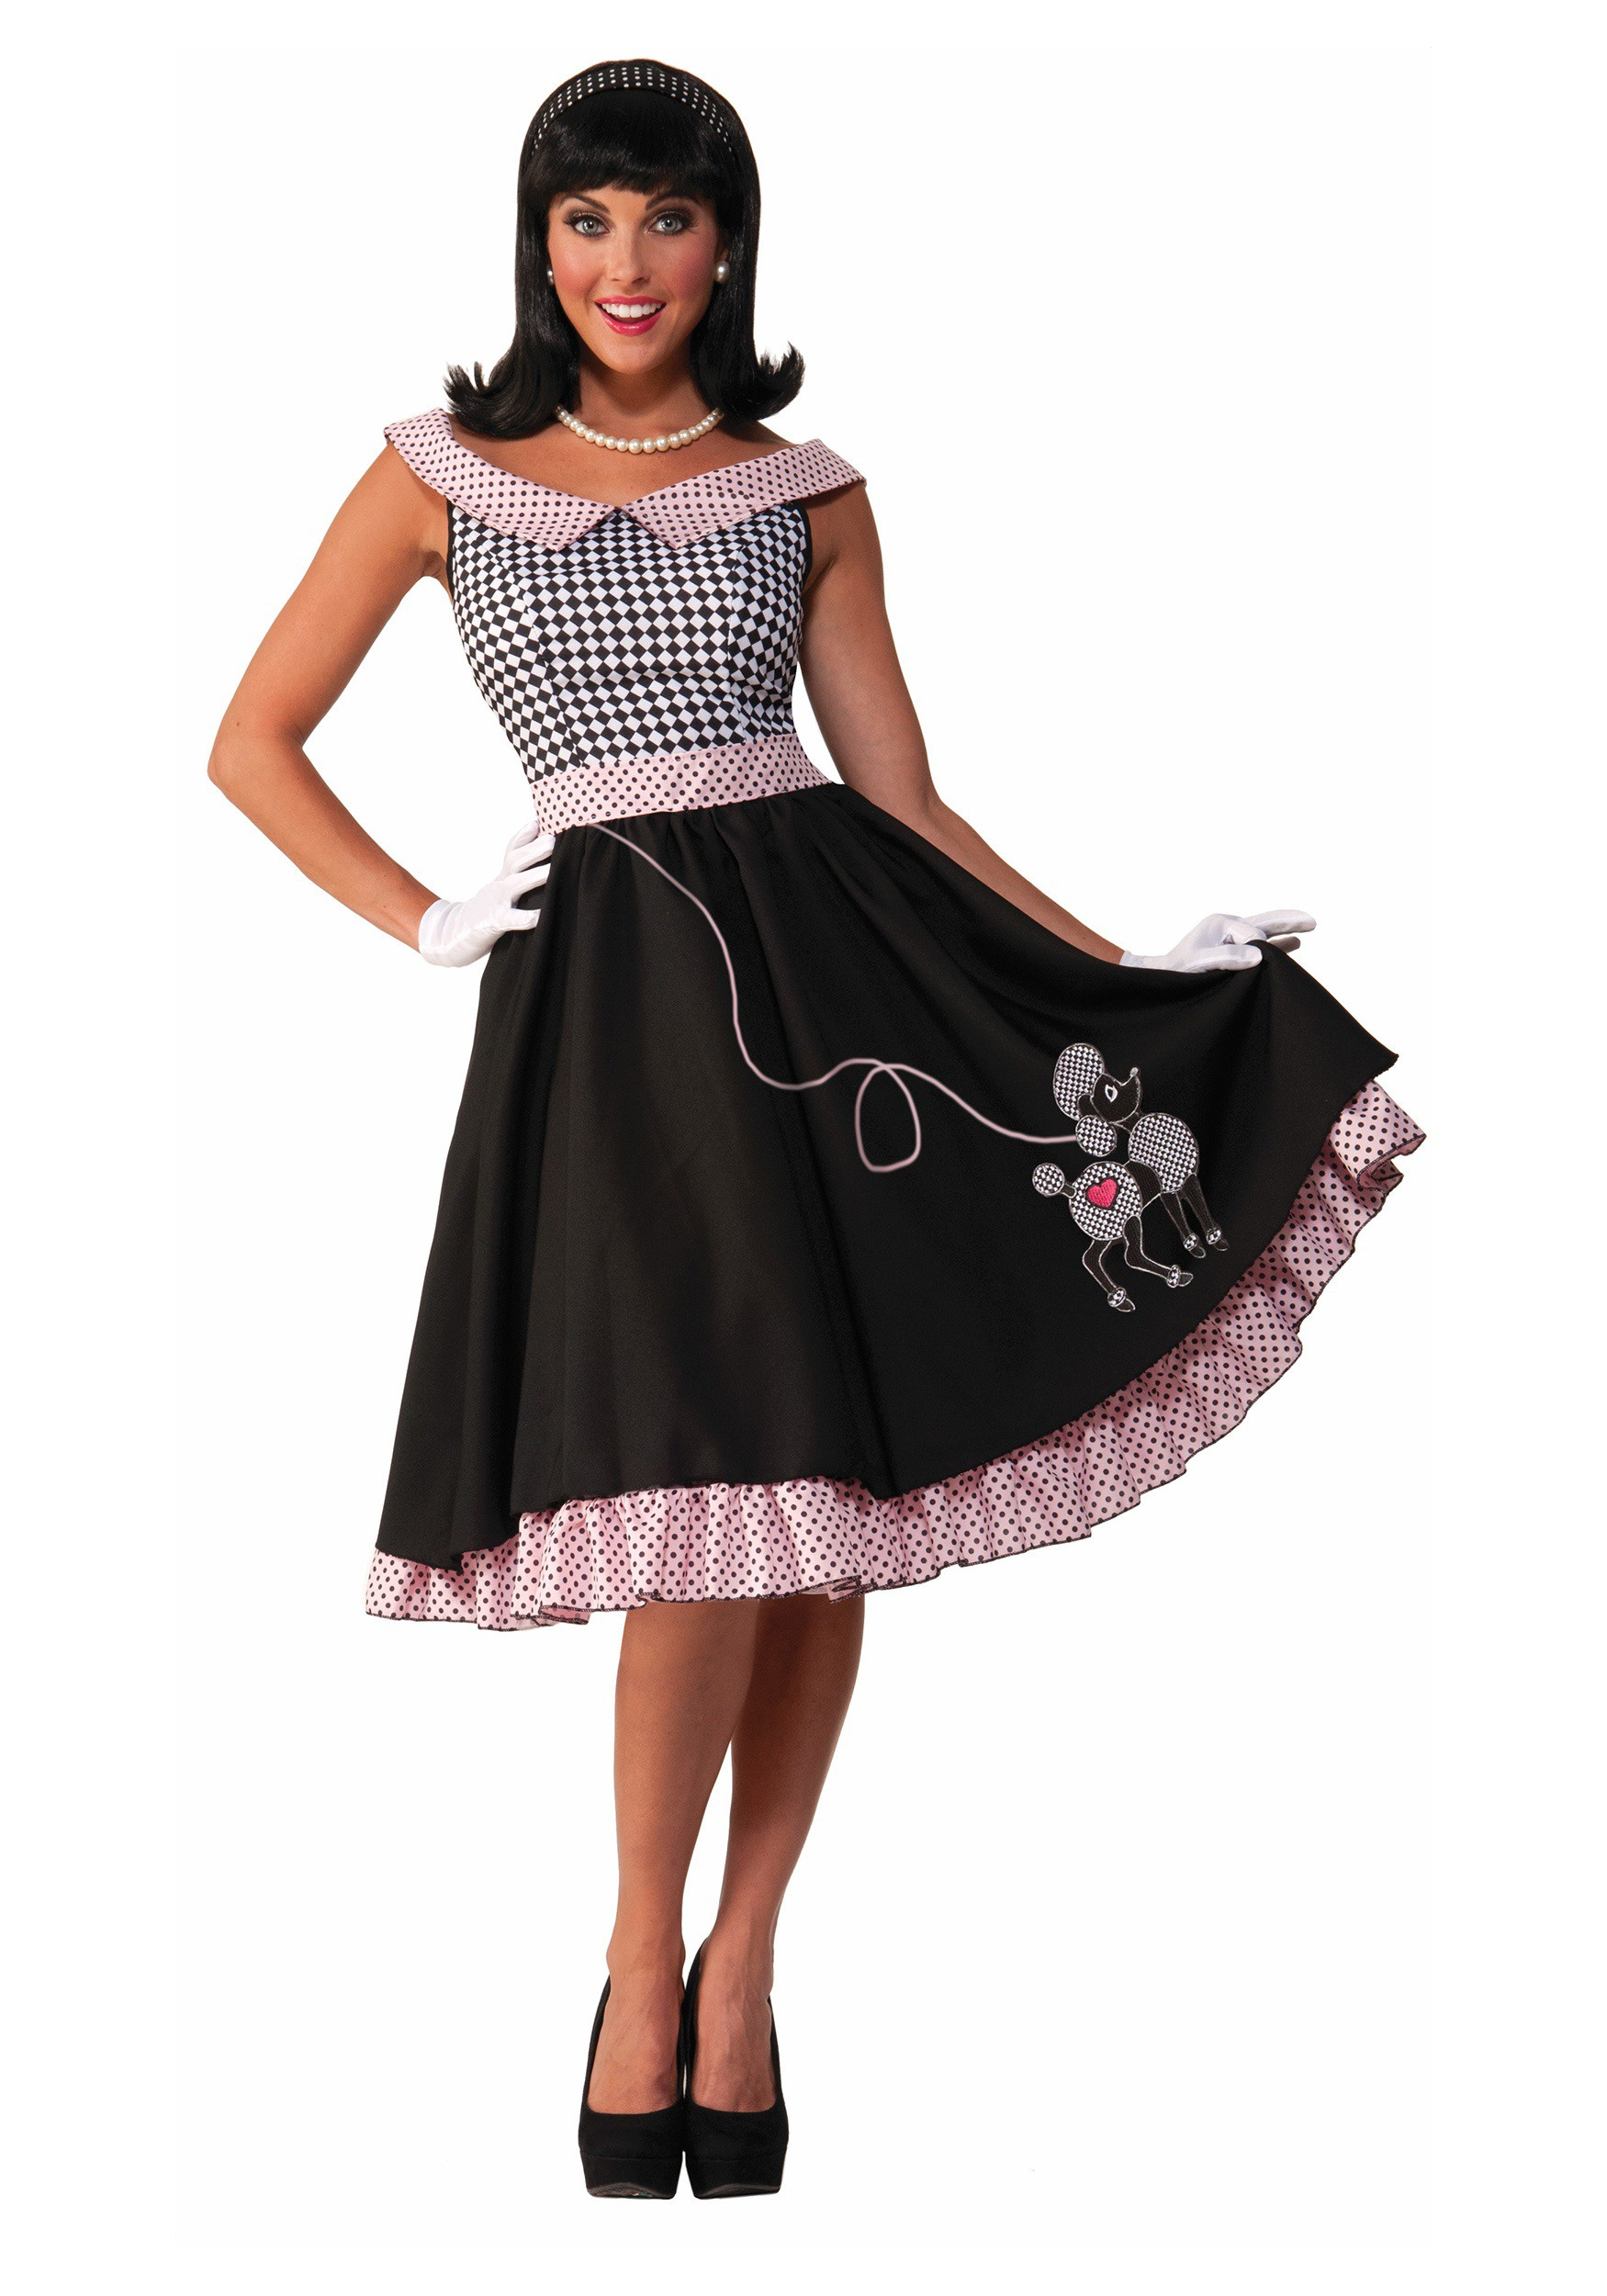 Women's 50s Checkered Cutie Costume